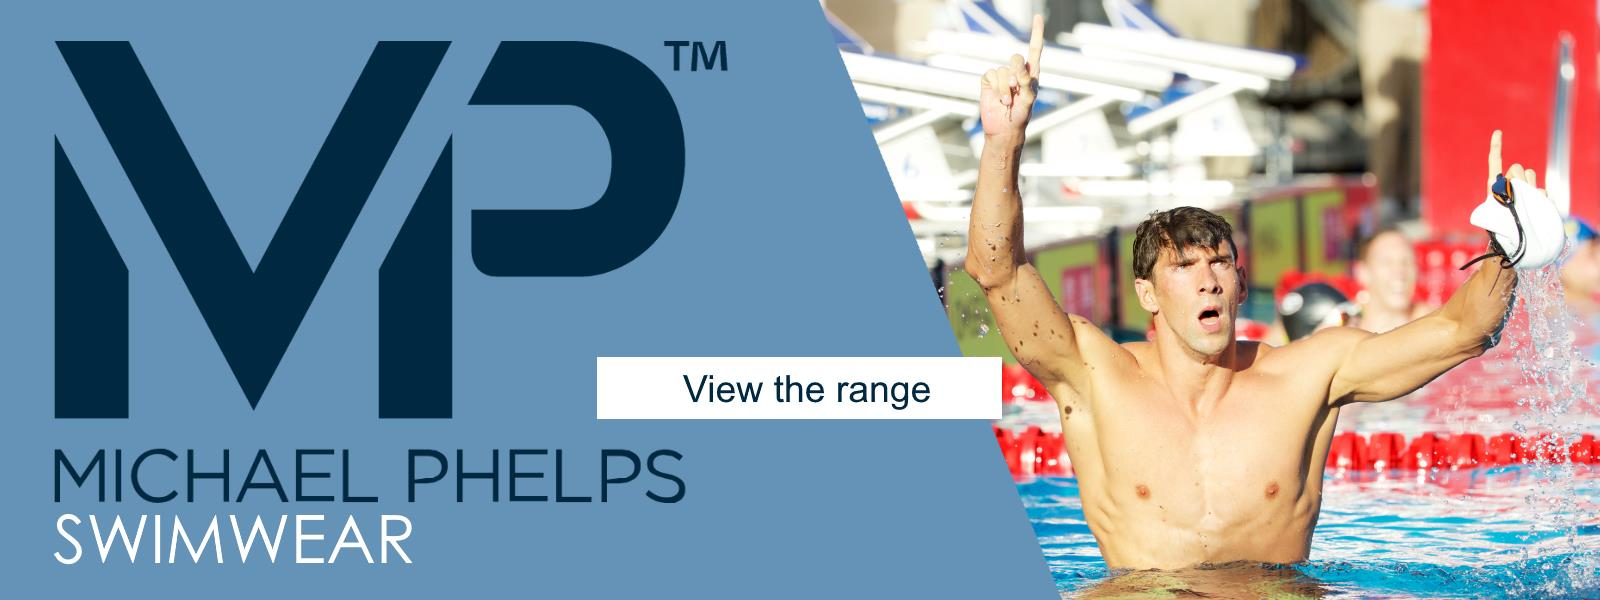 Michael Phelps - Shop the Range